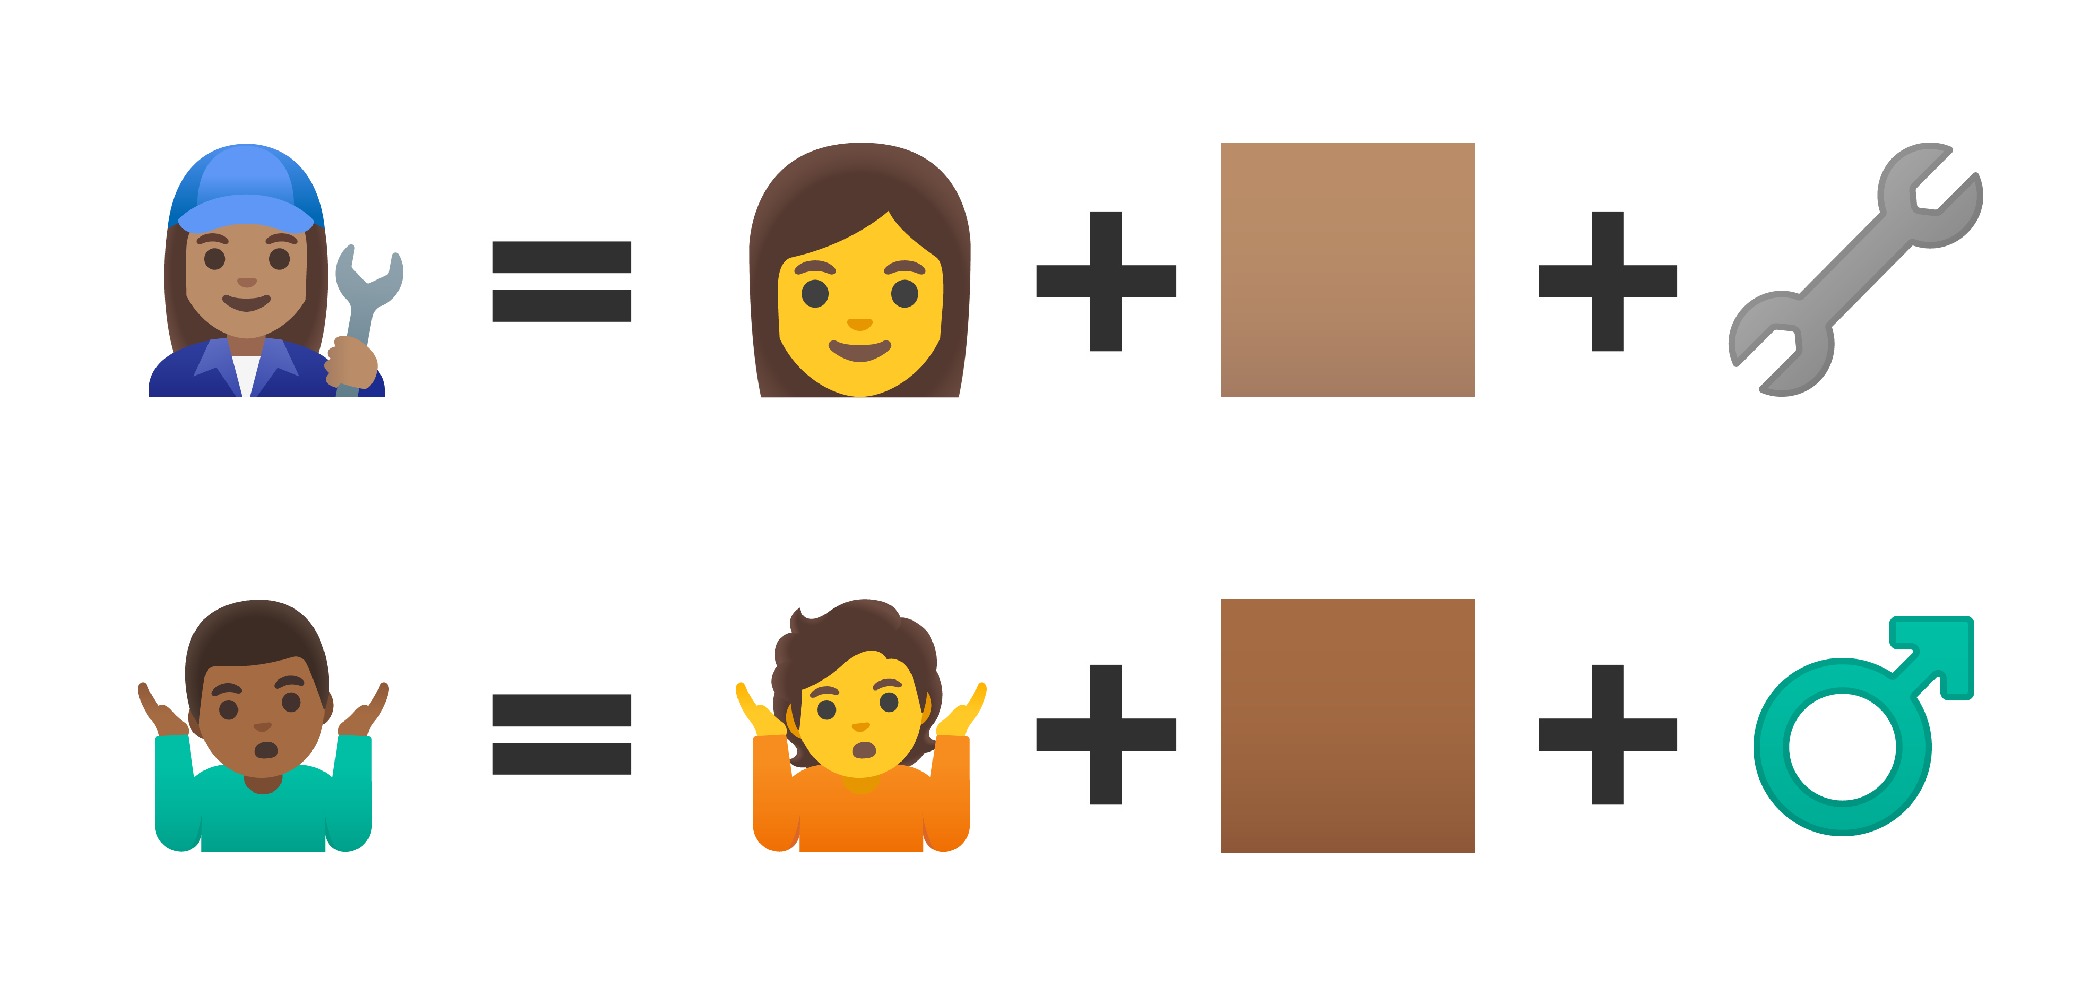 Emojipedia-Gmail-s-Outdated-Emoji-Support---Complex-ZWJ-Sequences-With-Skin-Tone-and-Gender-2